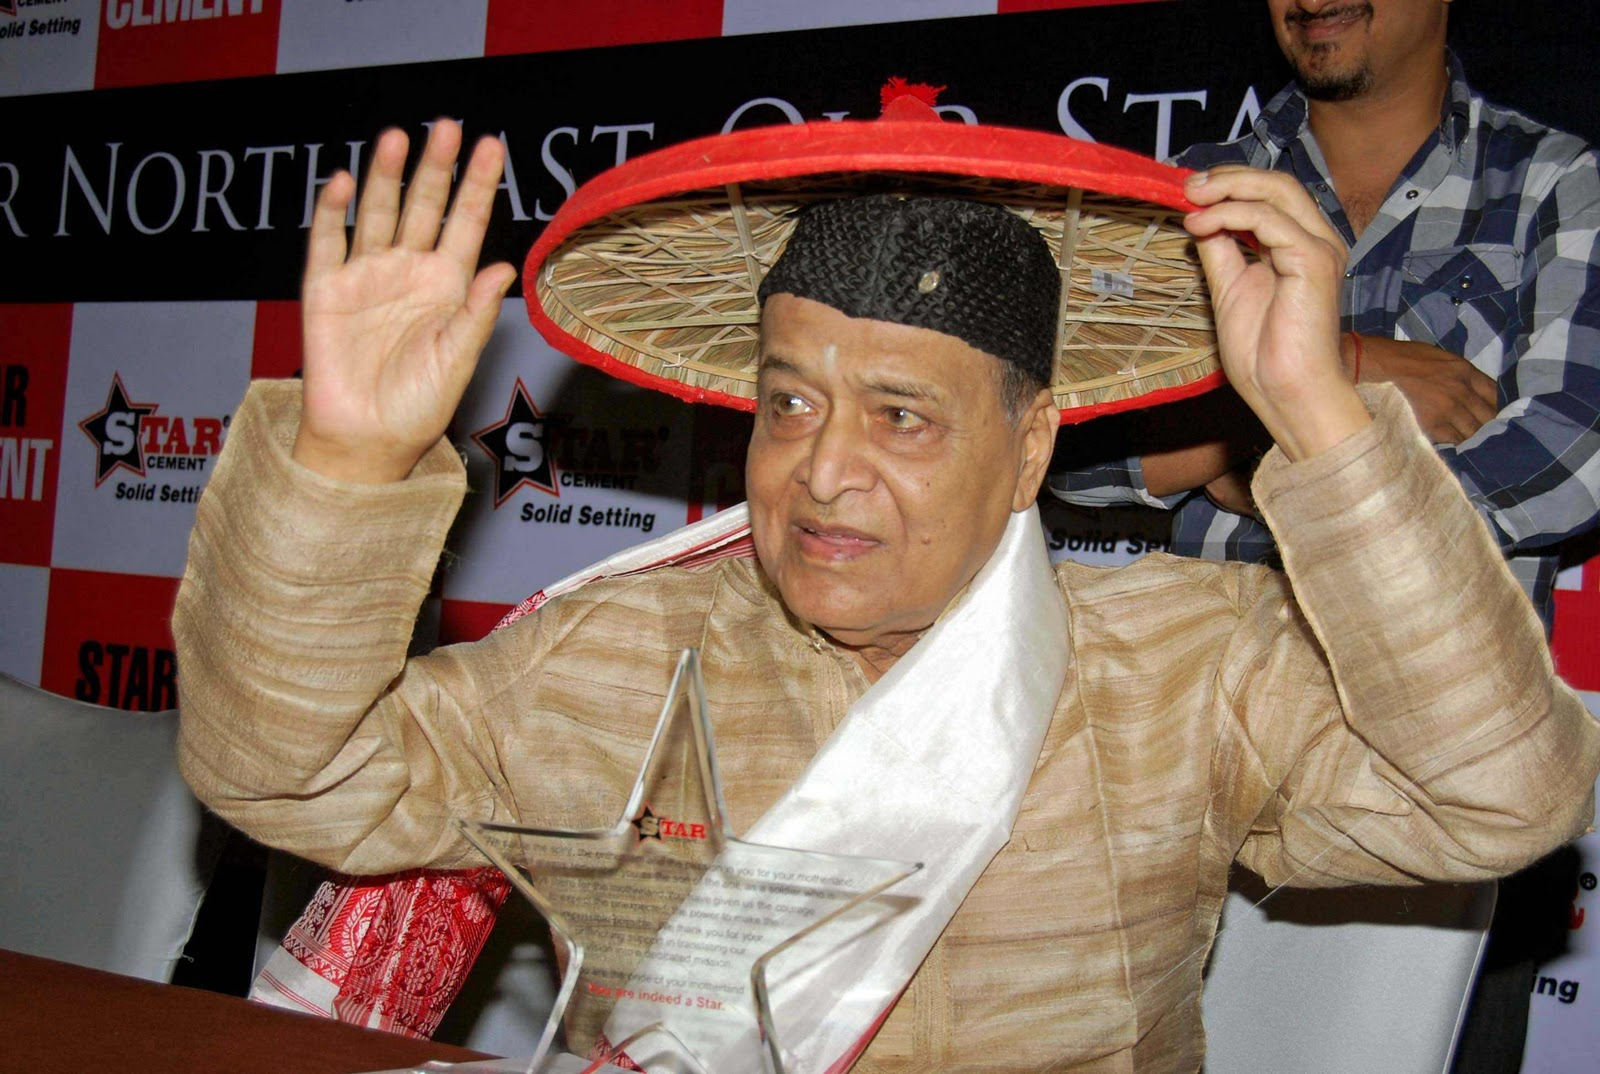 biography of dr. bhupen hazarika essay Essay business law model answer is biography an essay in hindi  sample english essay tips pdf essay on space programme laws english essay my dream leader nature essay writing grade 7th dr bhupen hazarika essay grant application personal statement example,.